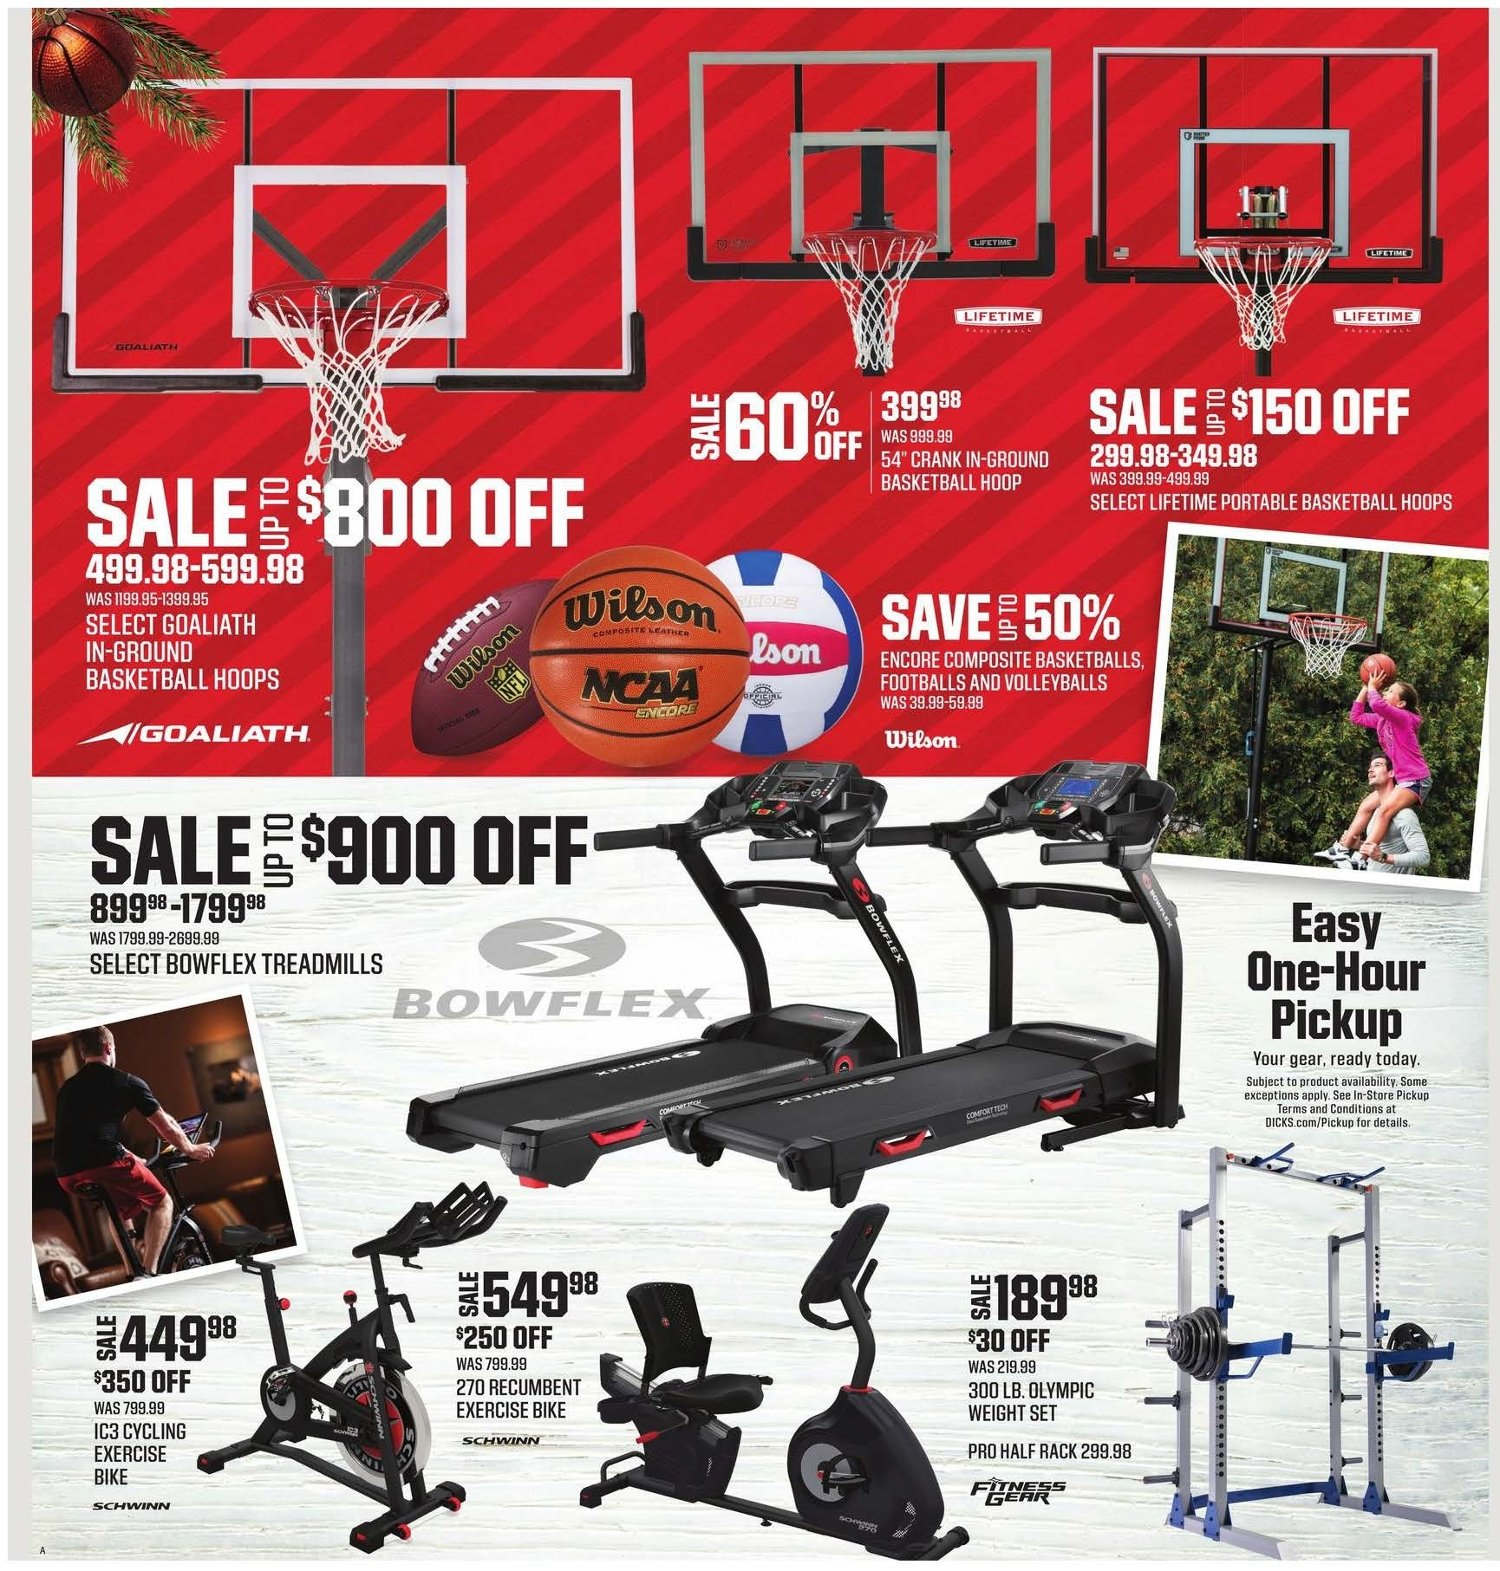 Dick's Sporting Goods Cyber Monday 2019 Page 11